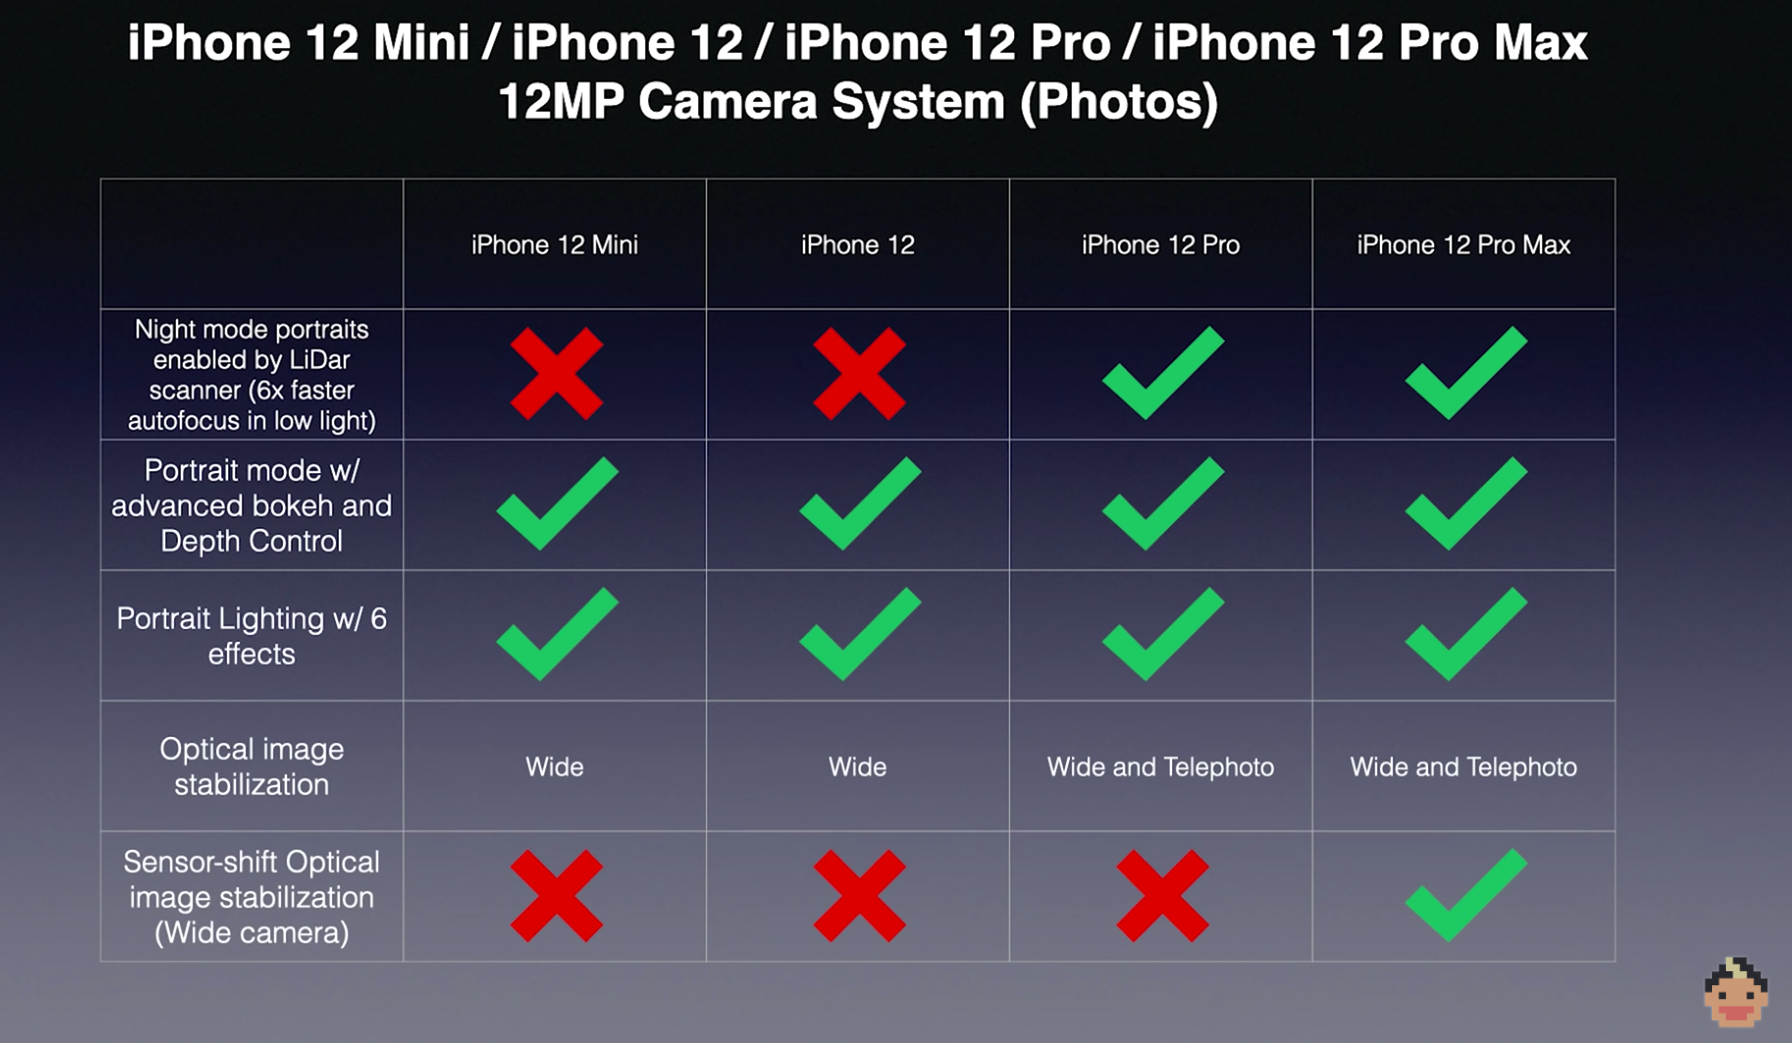 iPhone 12 Mini / iPhone 12 / iPhone 12 Pro / iPhone 12 Pro Max 12MP Camera System (Photos) software comparison table